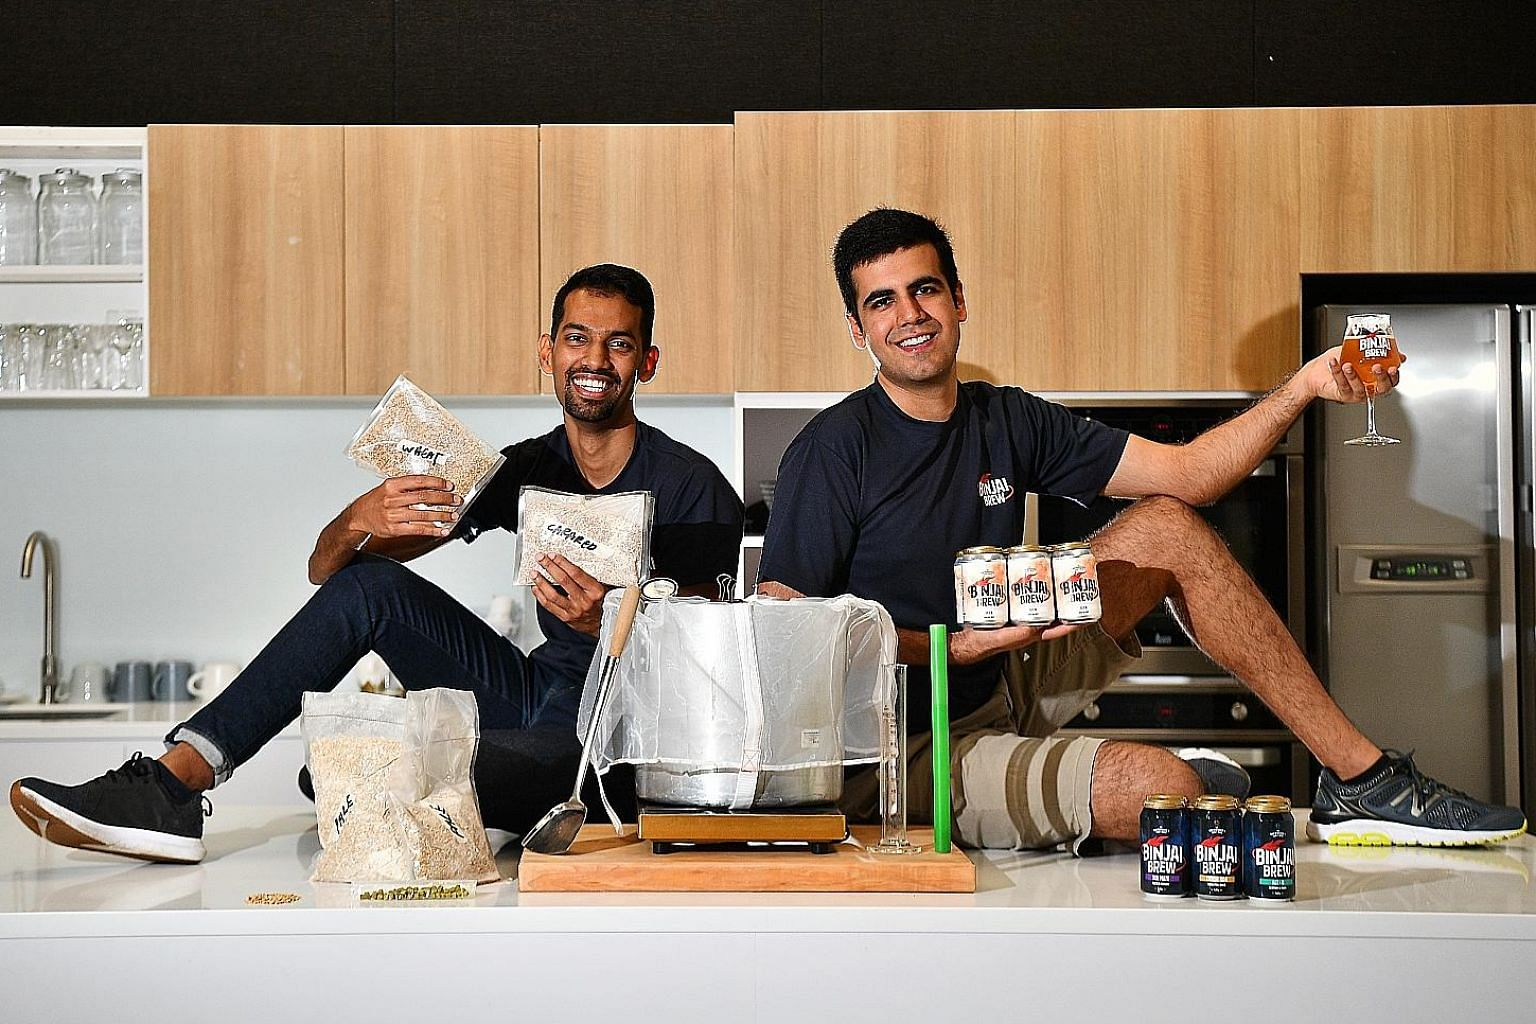 Mr Rahul Immandira, (left) and Mr Heetesh Alwani, co-founders of Binjai Brew, have found a way to make beer more earth-friendly. Their new beer, Set B, is made with orange peel from juice machines and unwanted bread crusts from a Whampoa bakery. The